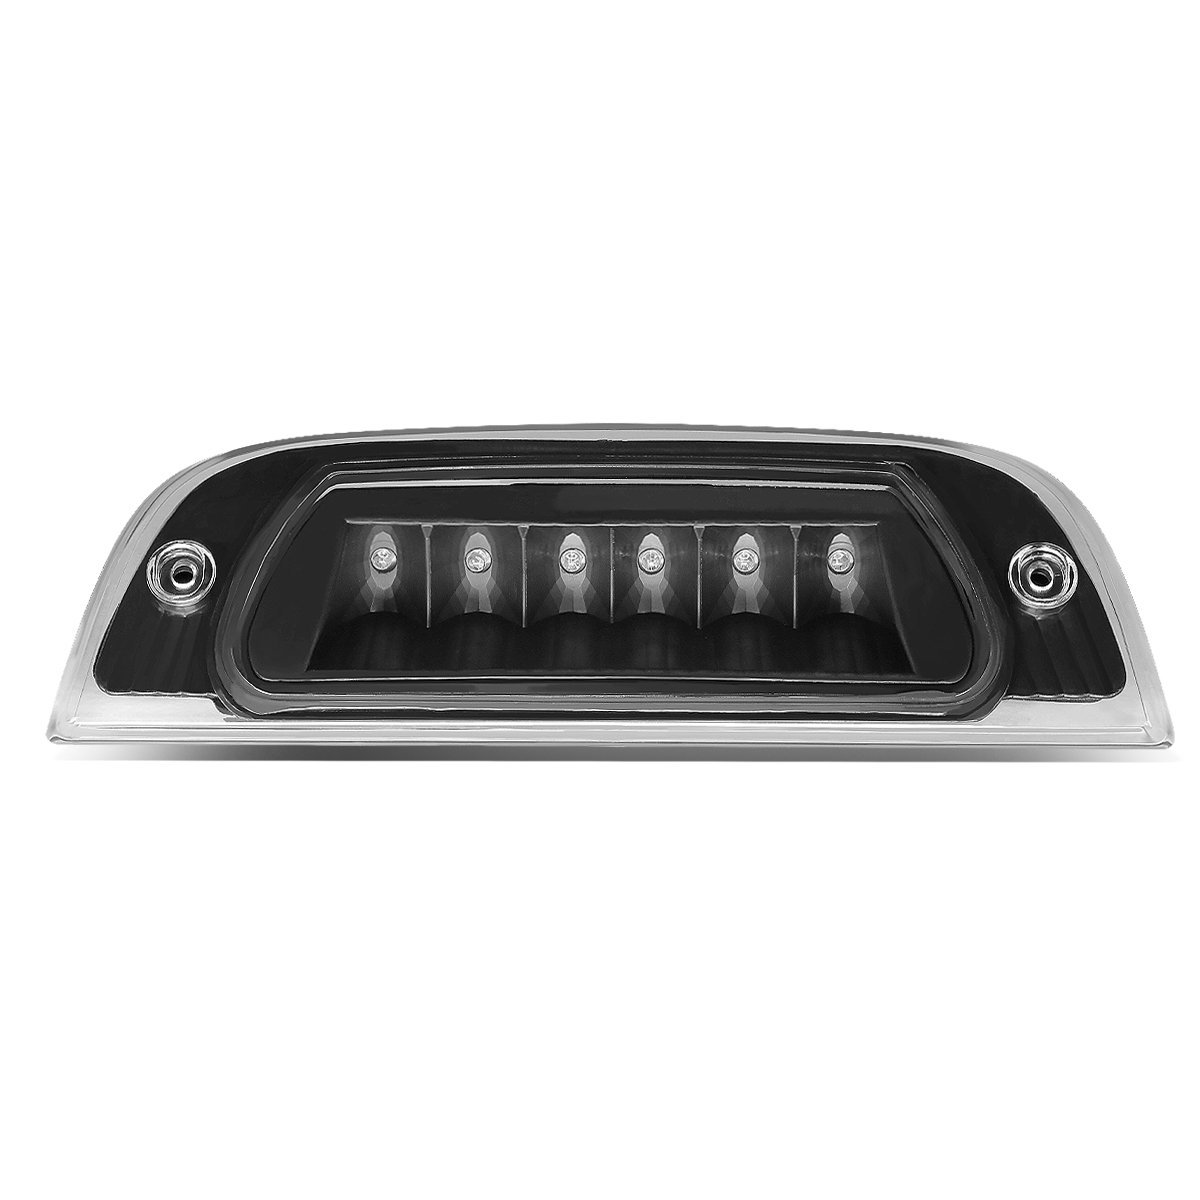 DNA MOTORING 3BL-JLIR02-LED-BK LED Third Brake Light